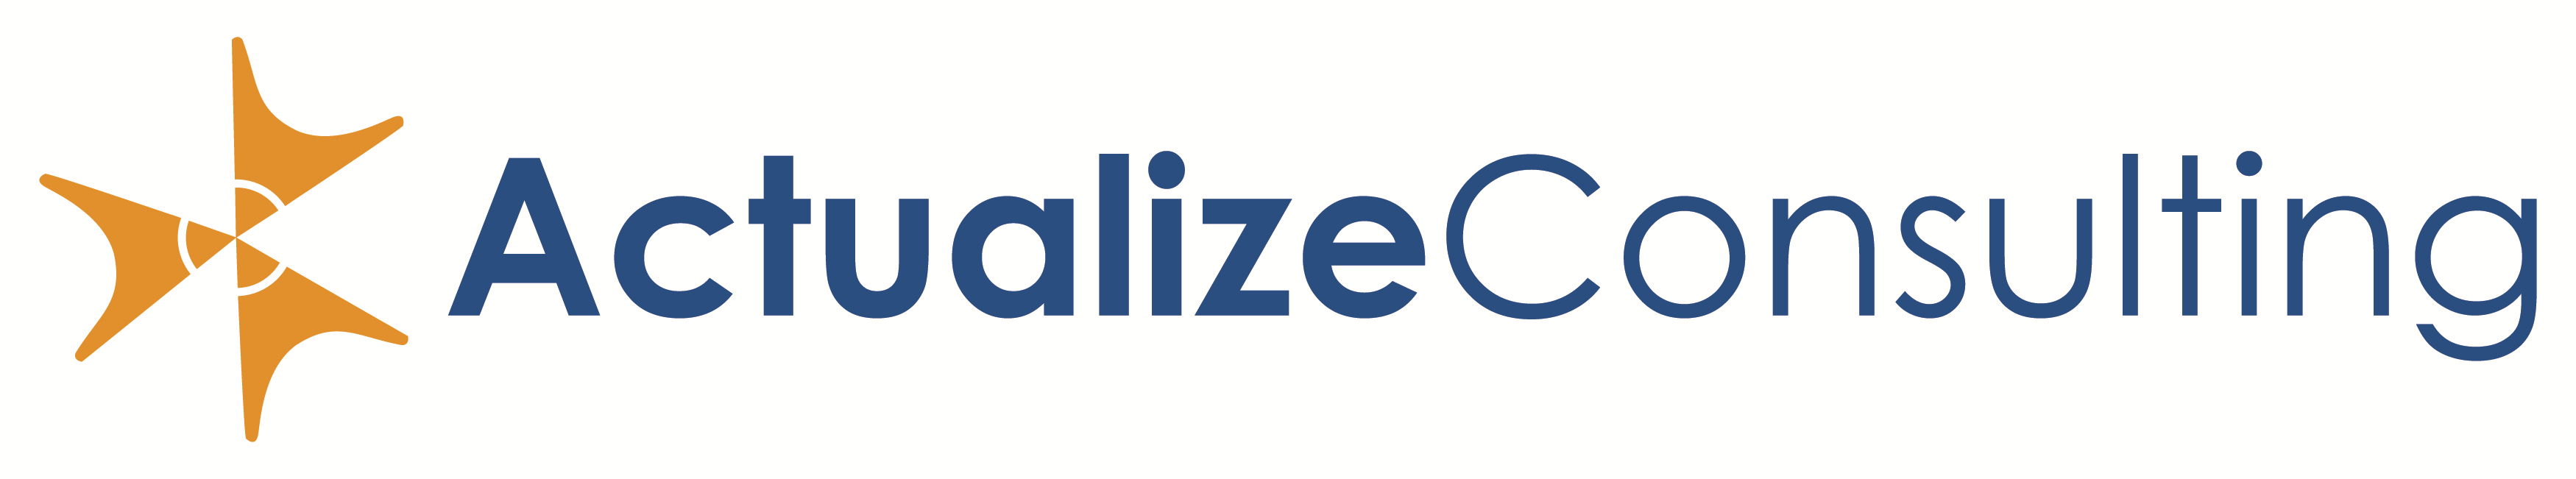 Actualize Consulting logo